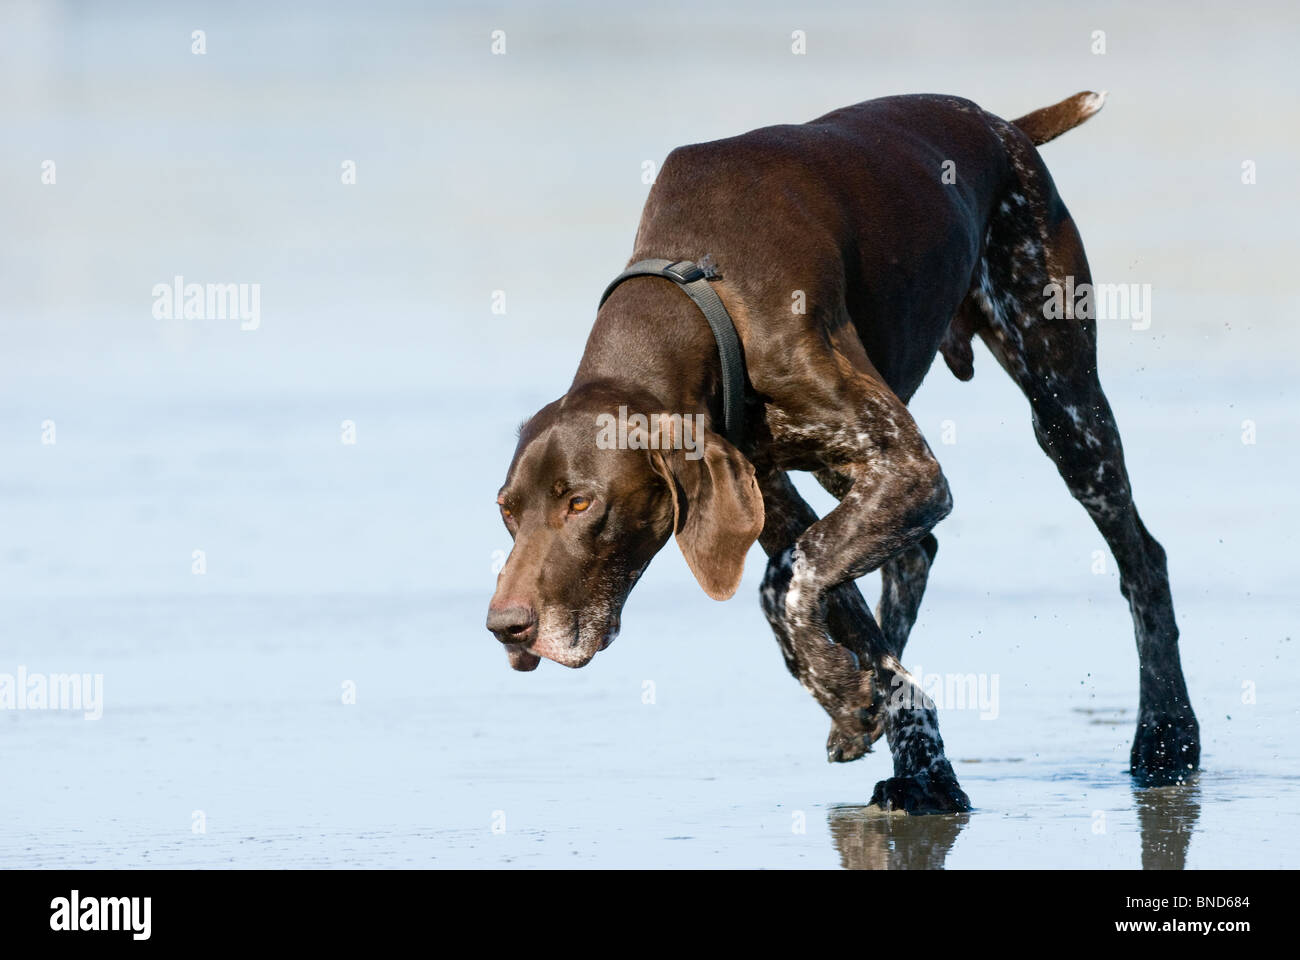 German short haired pointer Canis lupus familiaris - Stock Image